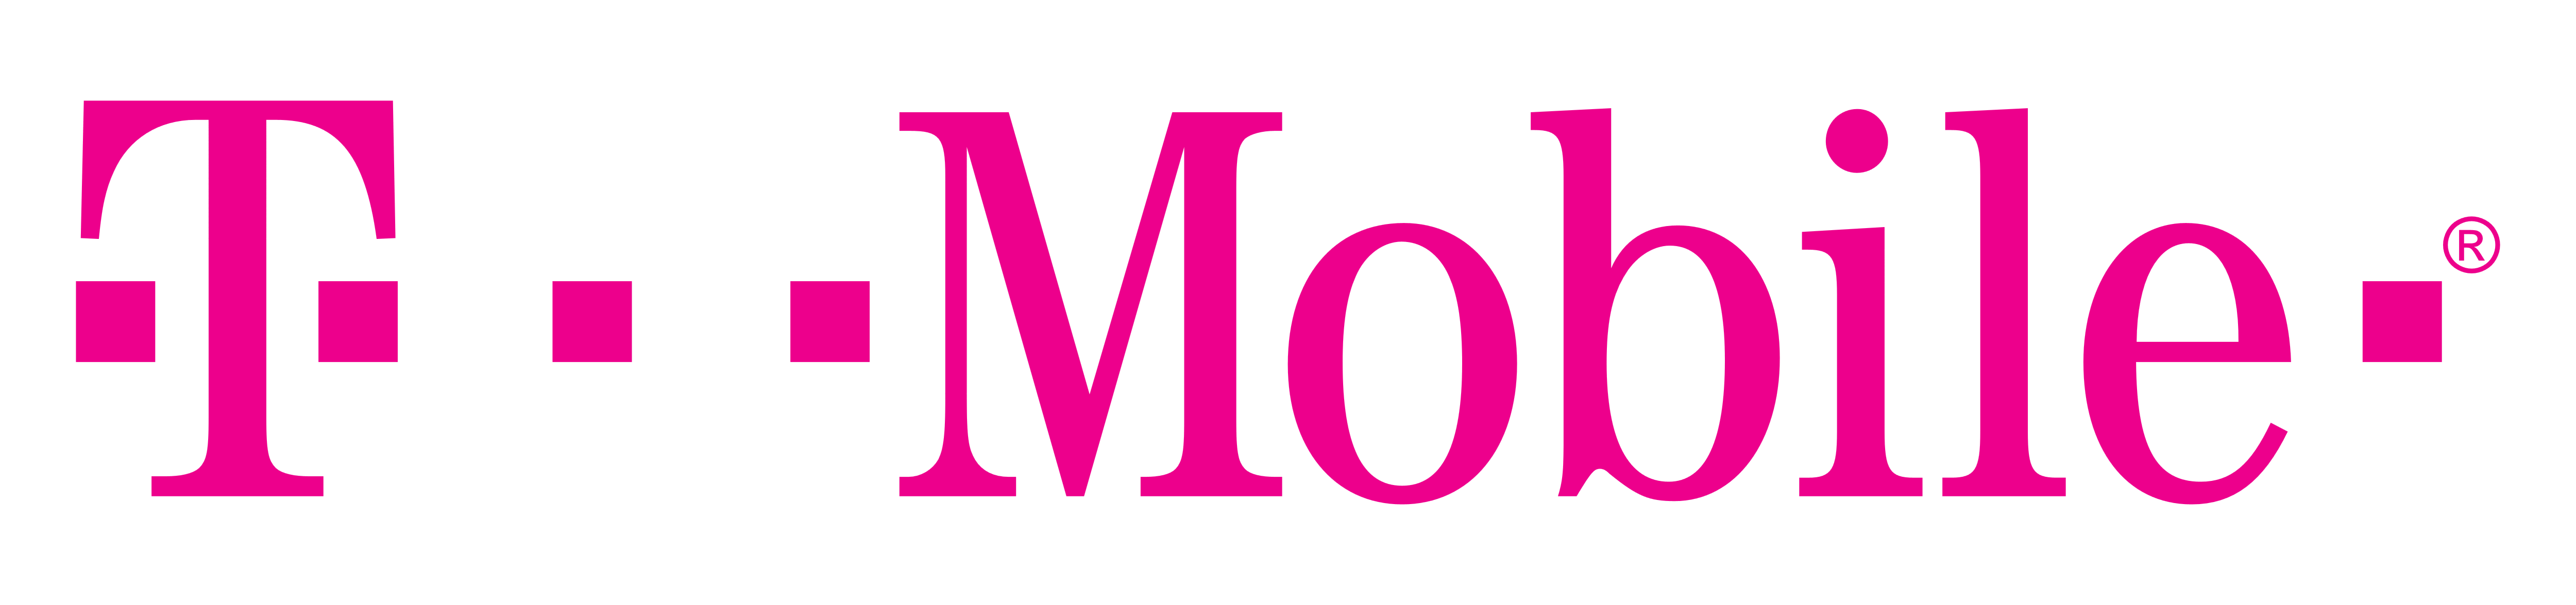 T mobile logos download for Food network magazine phone number customer service